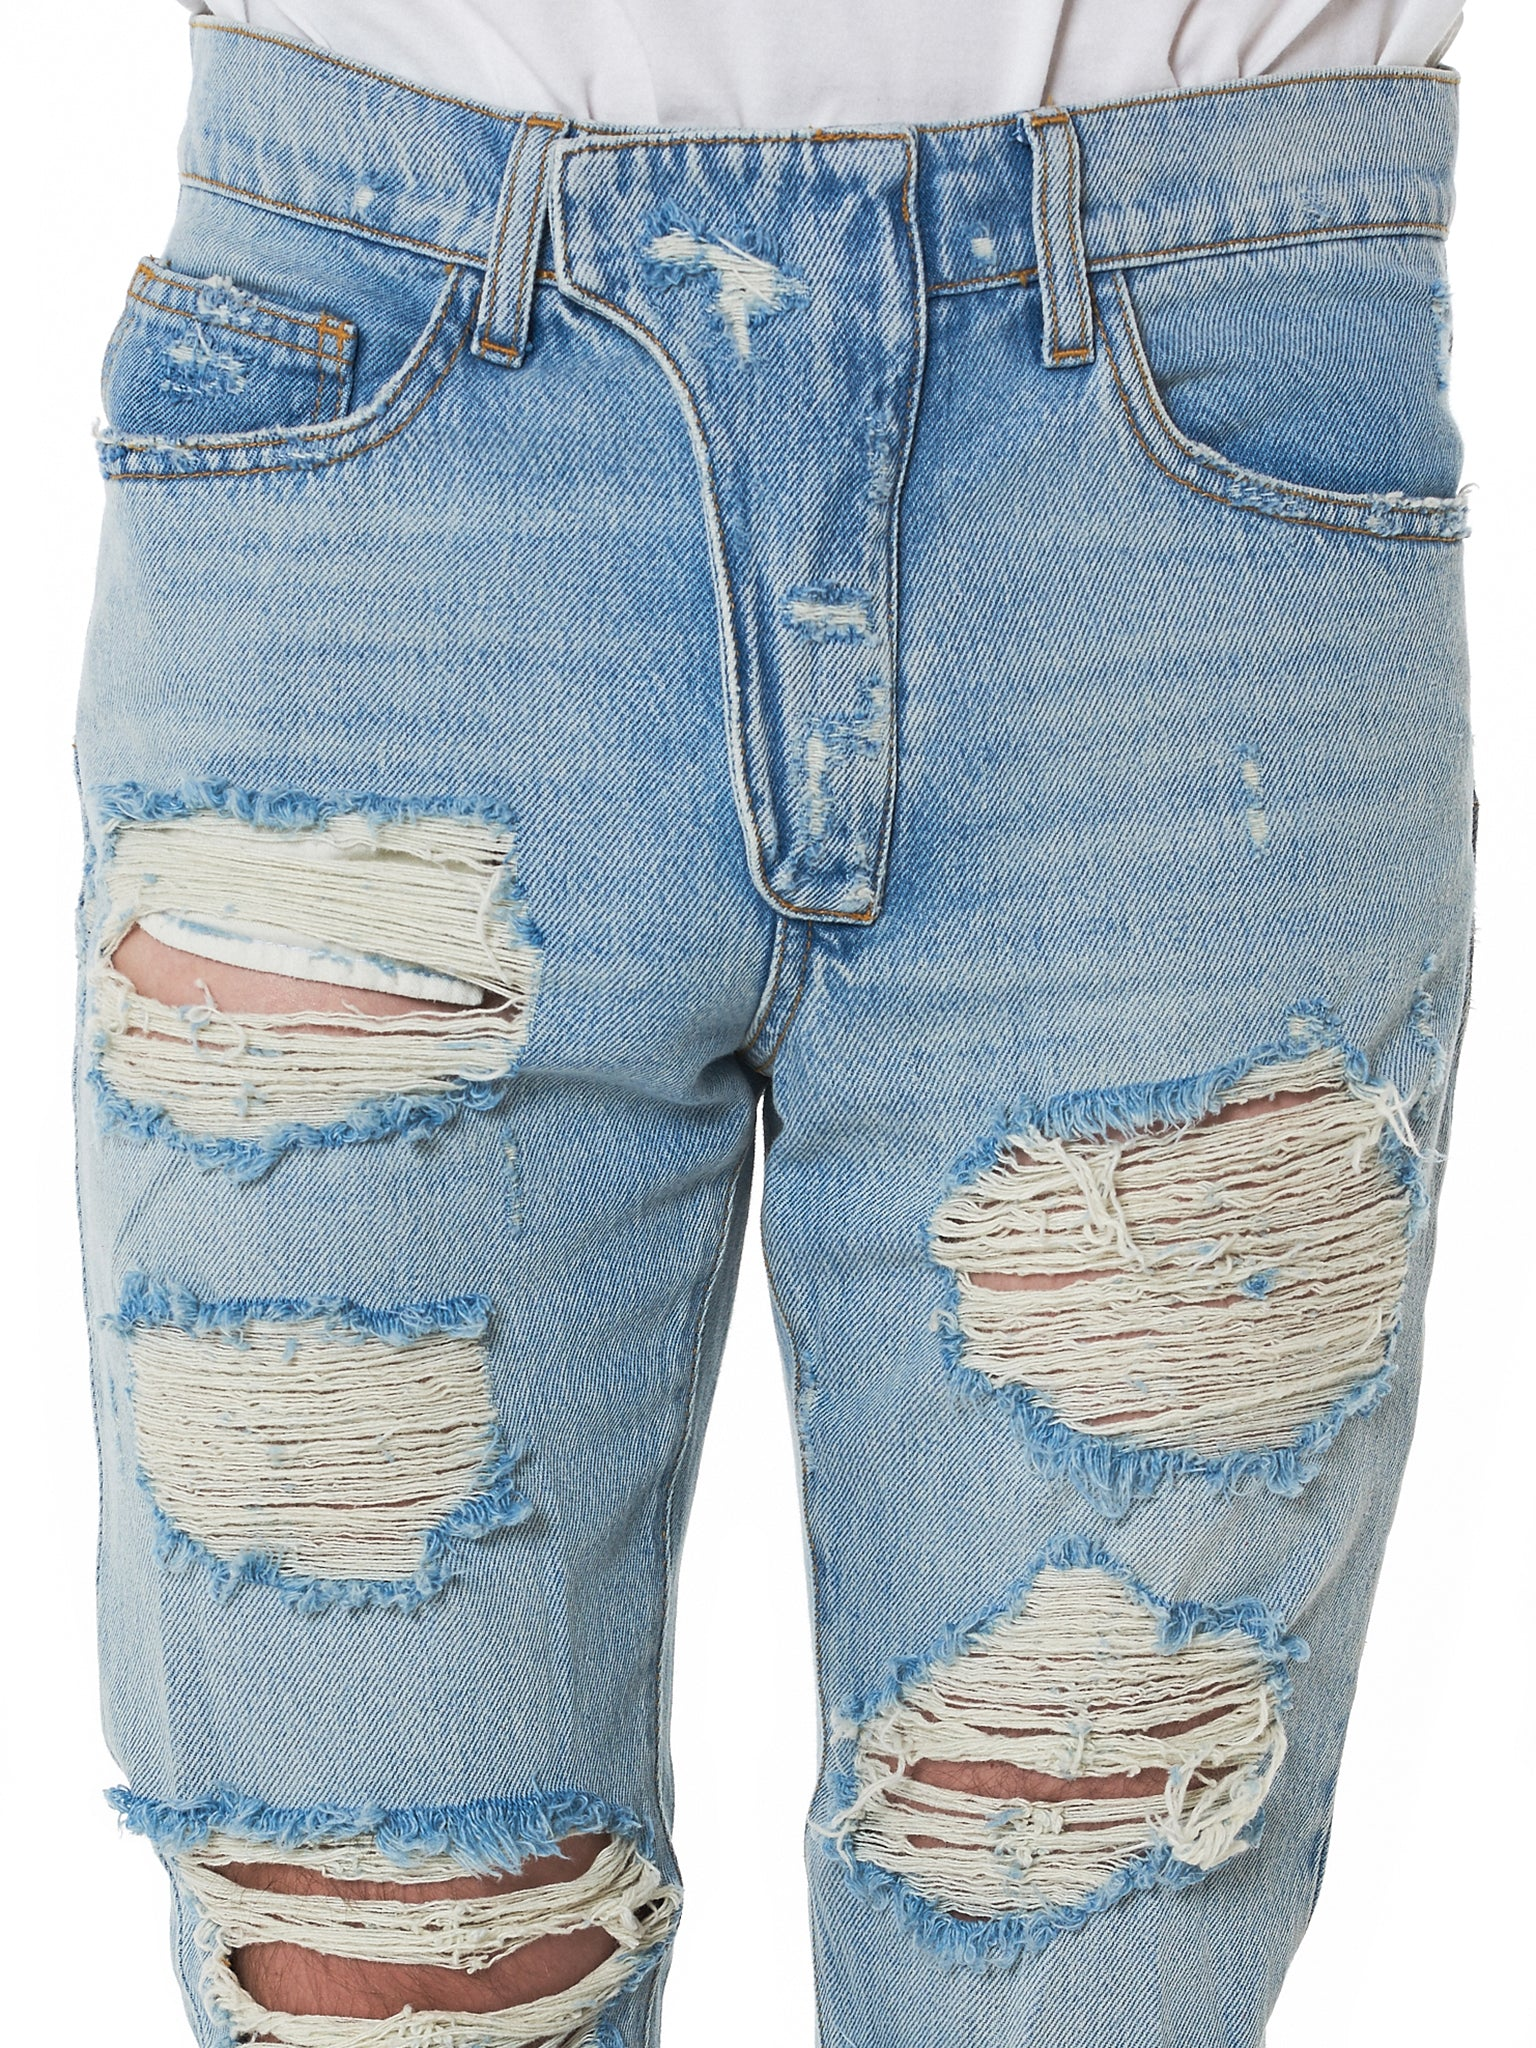 IH NOM UH NIT Distressed Denim - Hlorenzo Detail 3